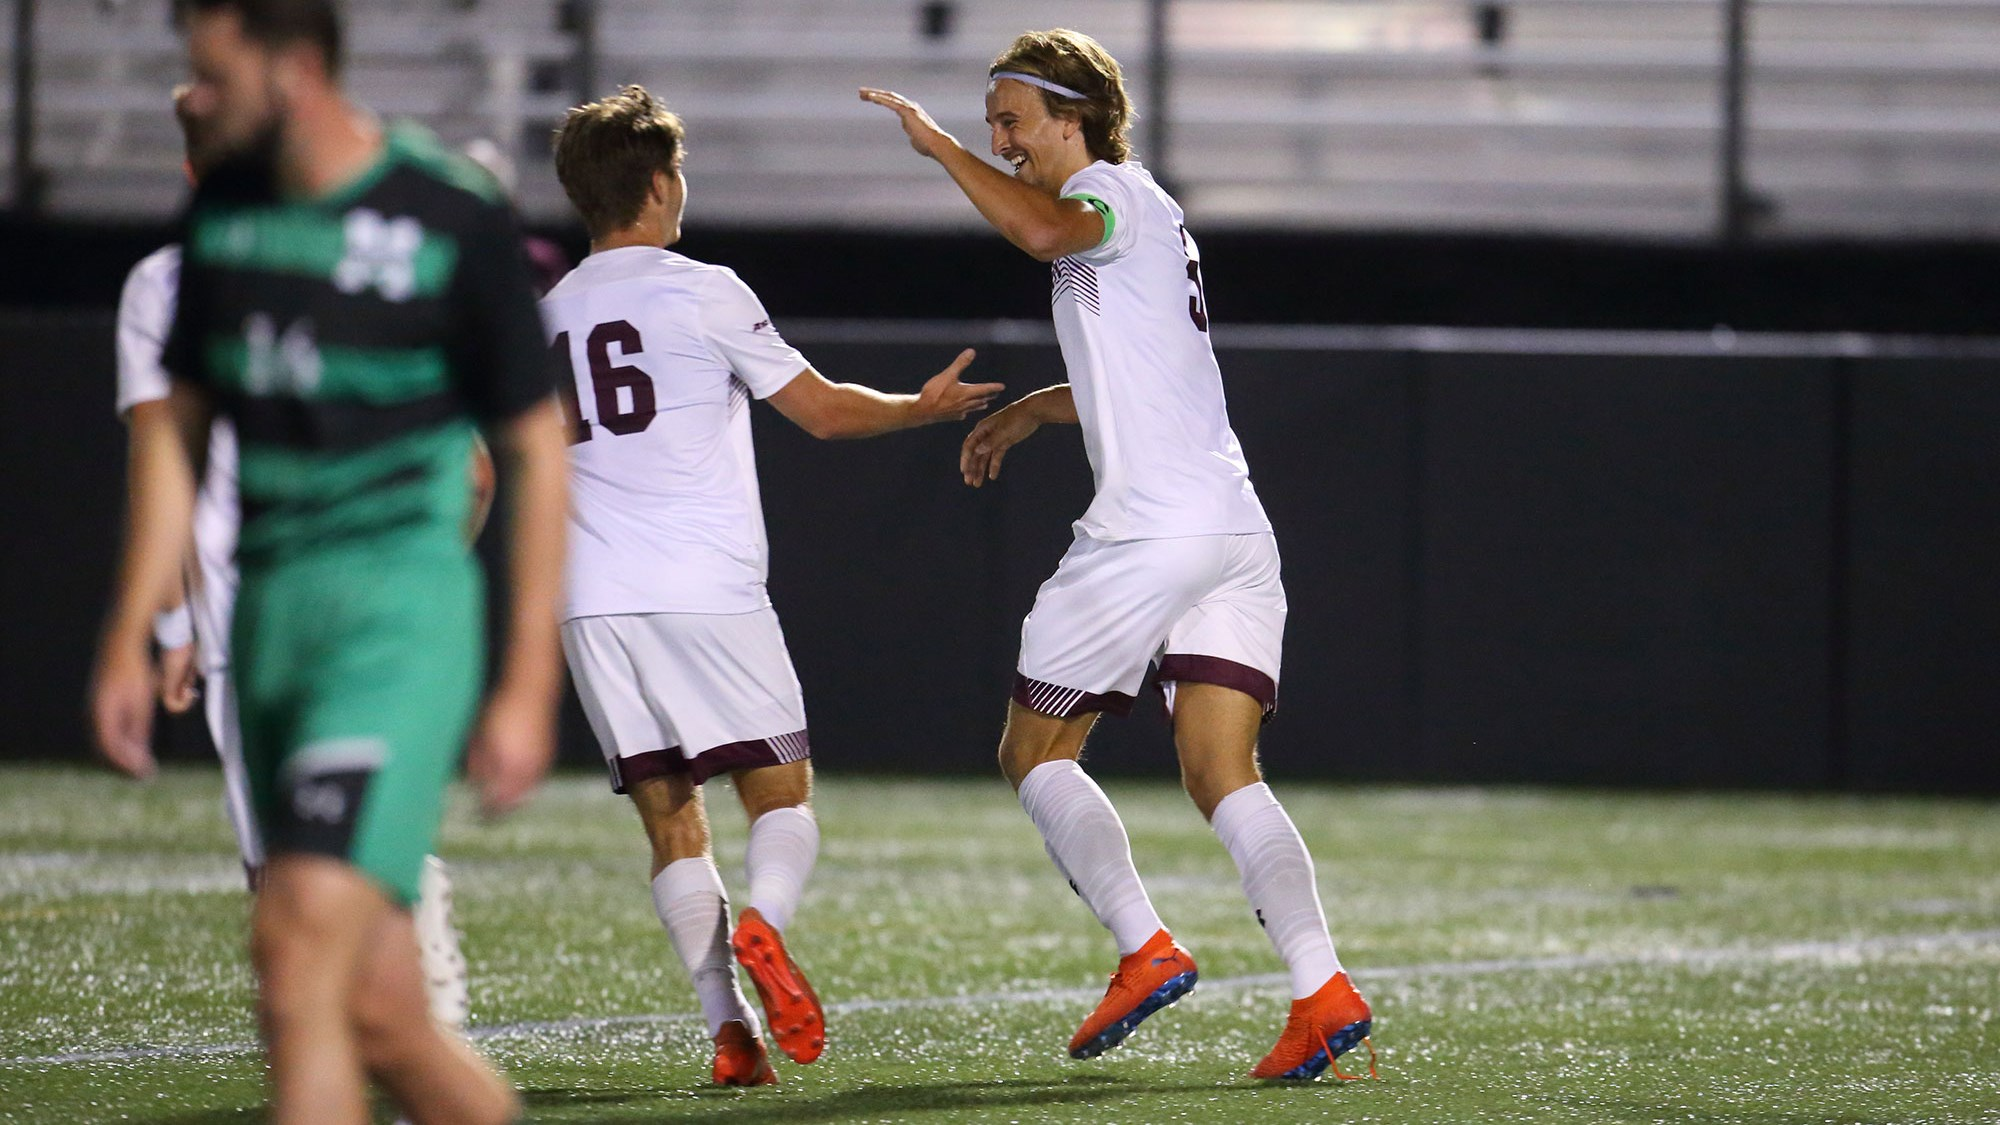 Joergen Oland celebrates after netting his fourth goal of the year.